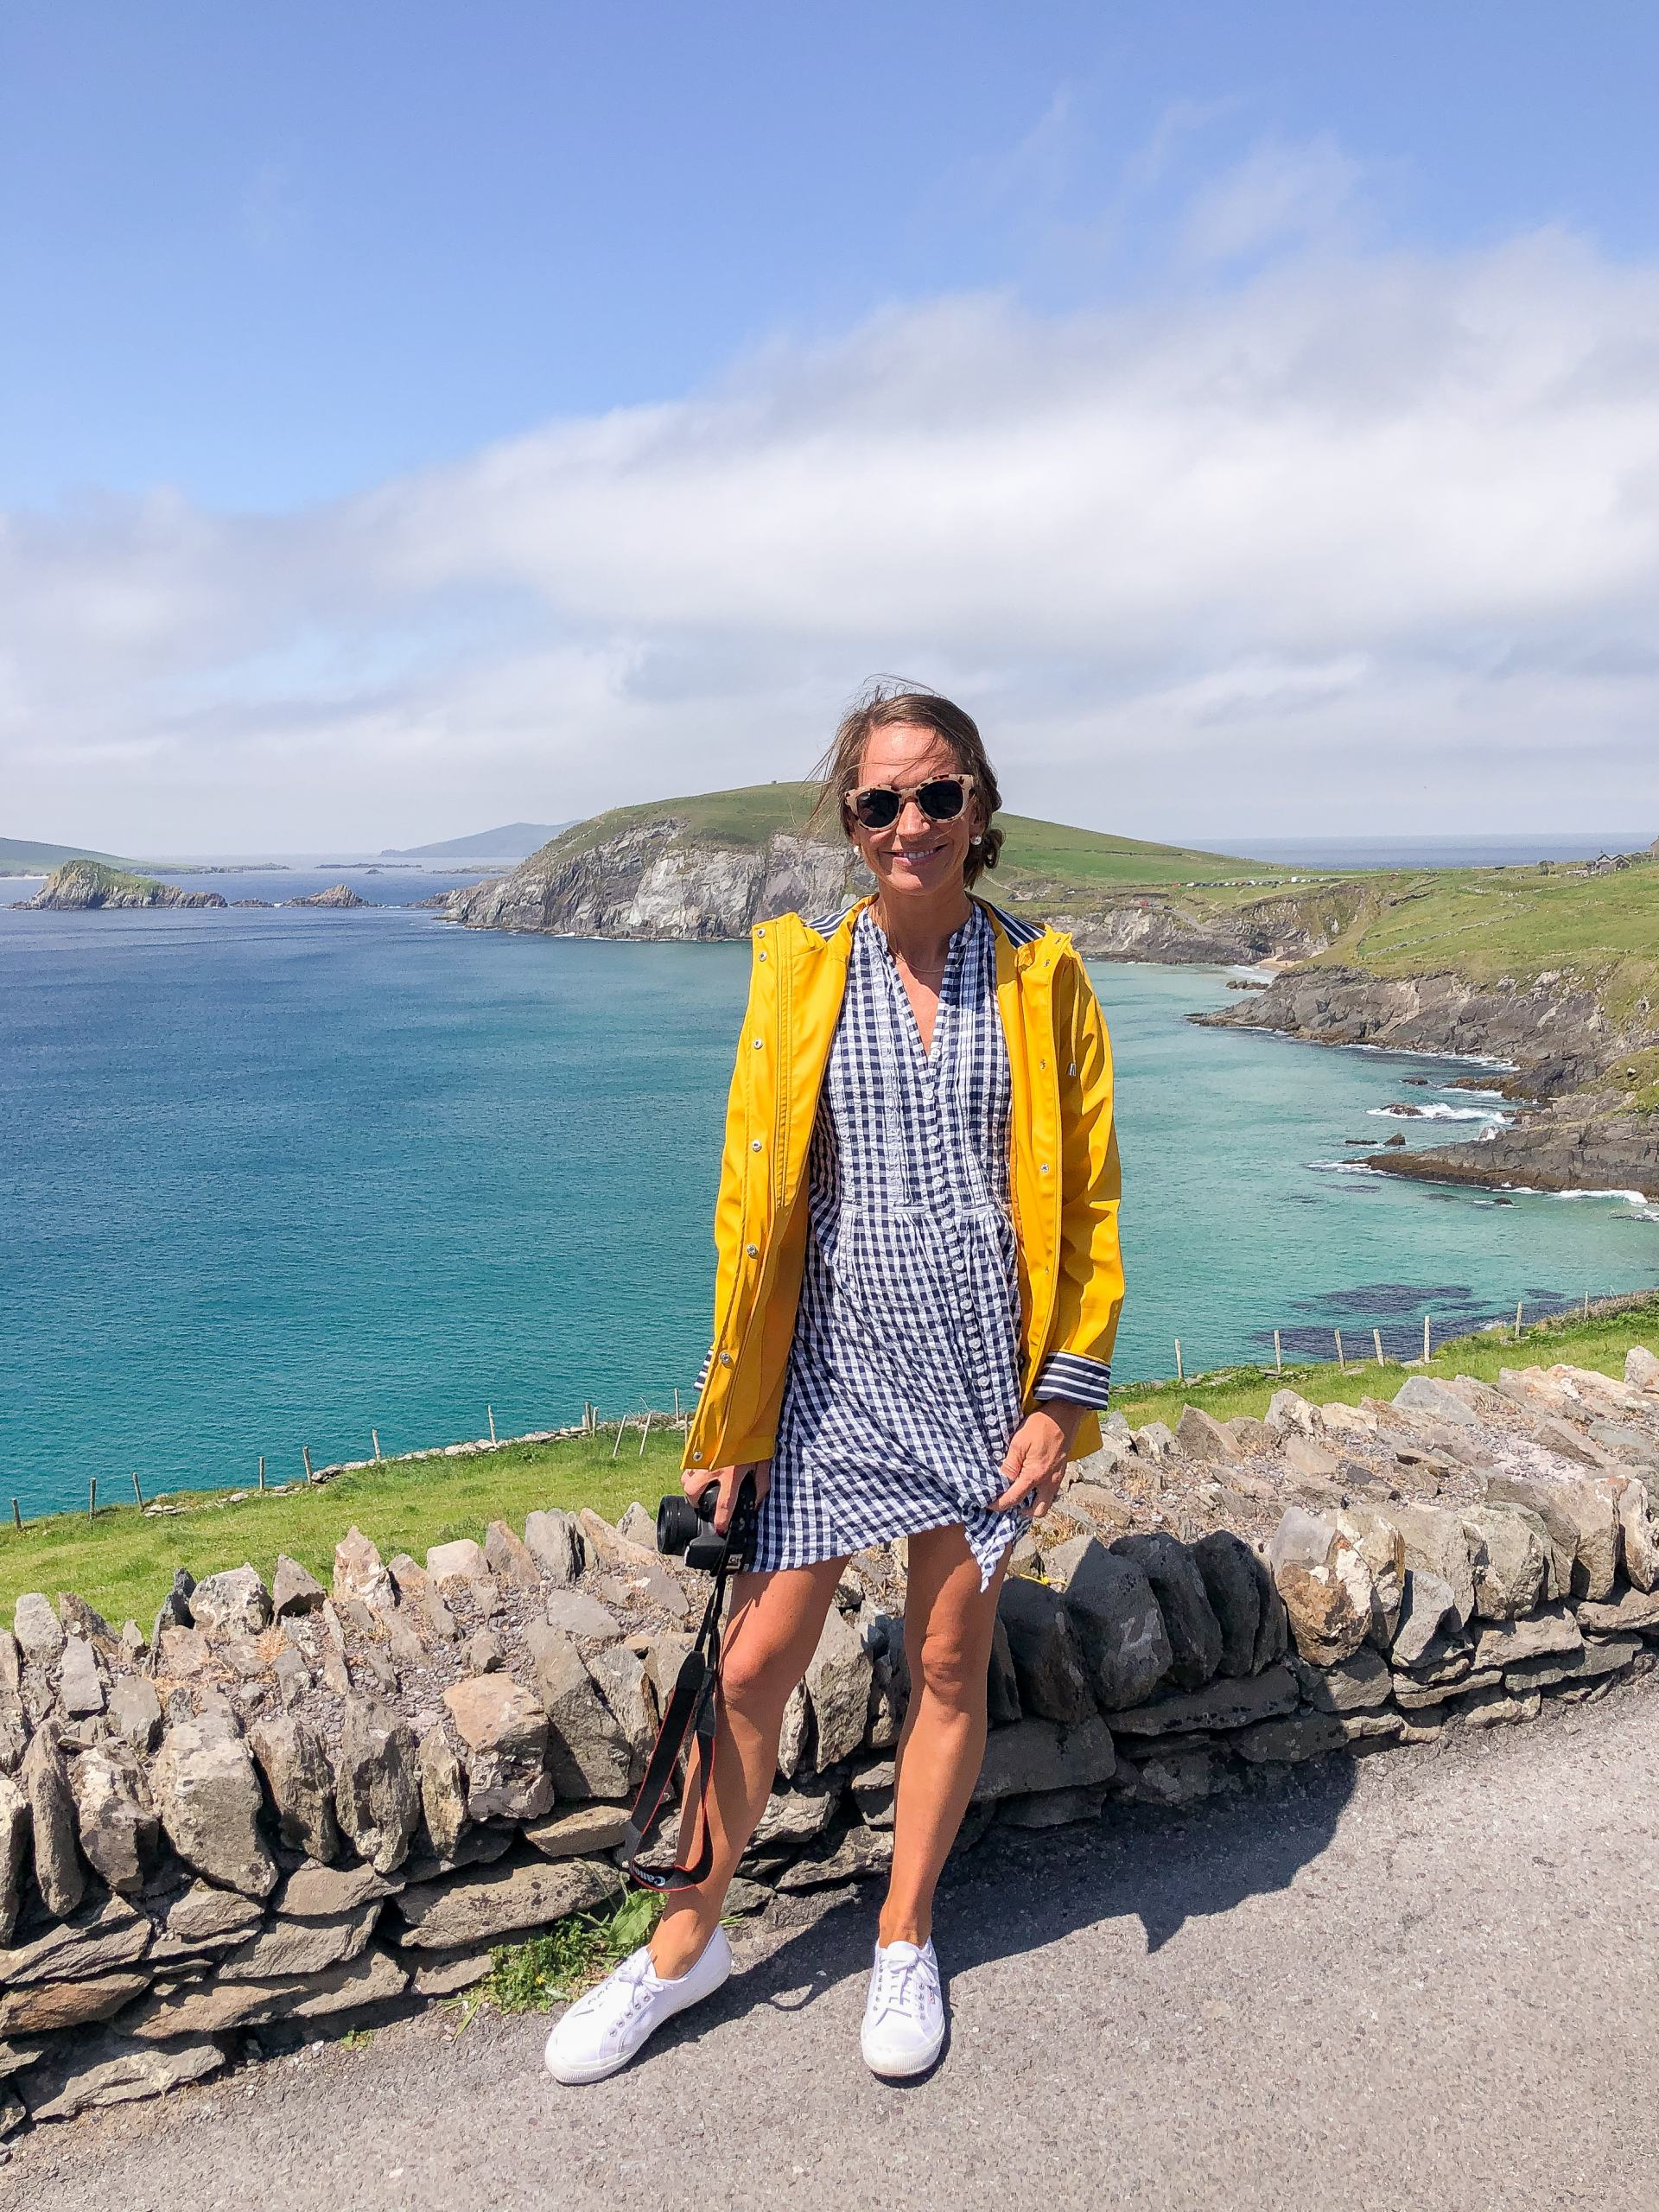 traveling in ireland - travel style - travel outfit inspo - yellow rain jacket - madison mathews dress - dingle peninsula